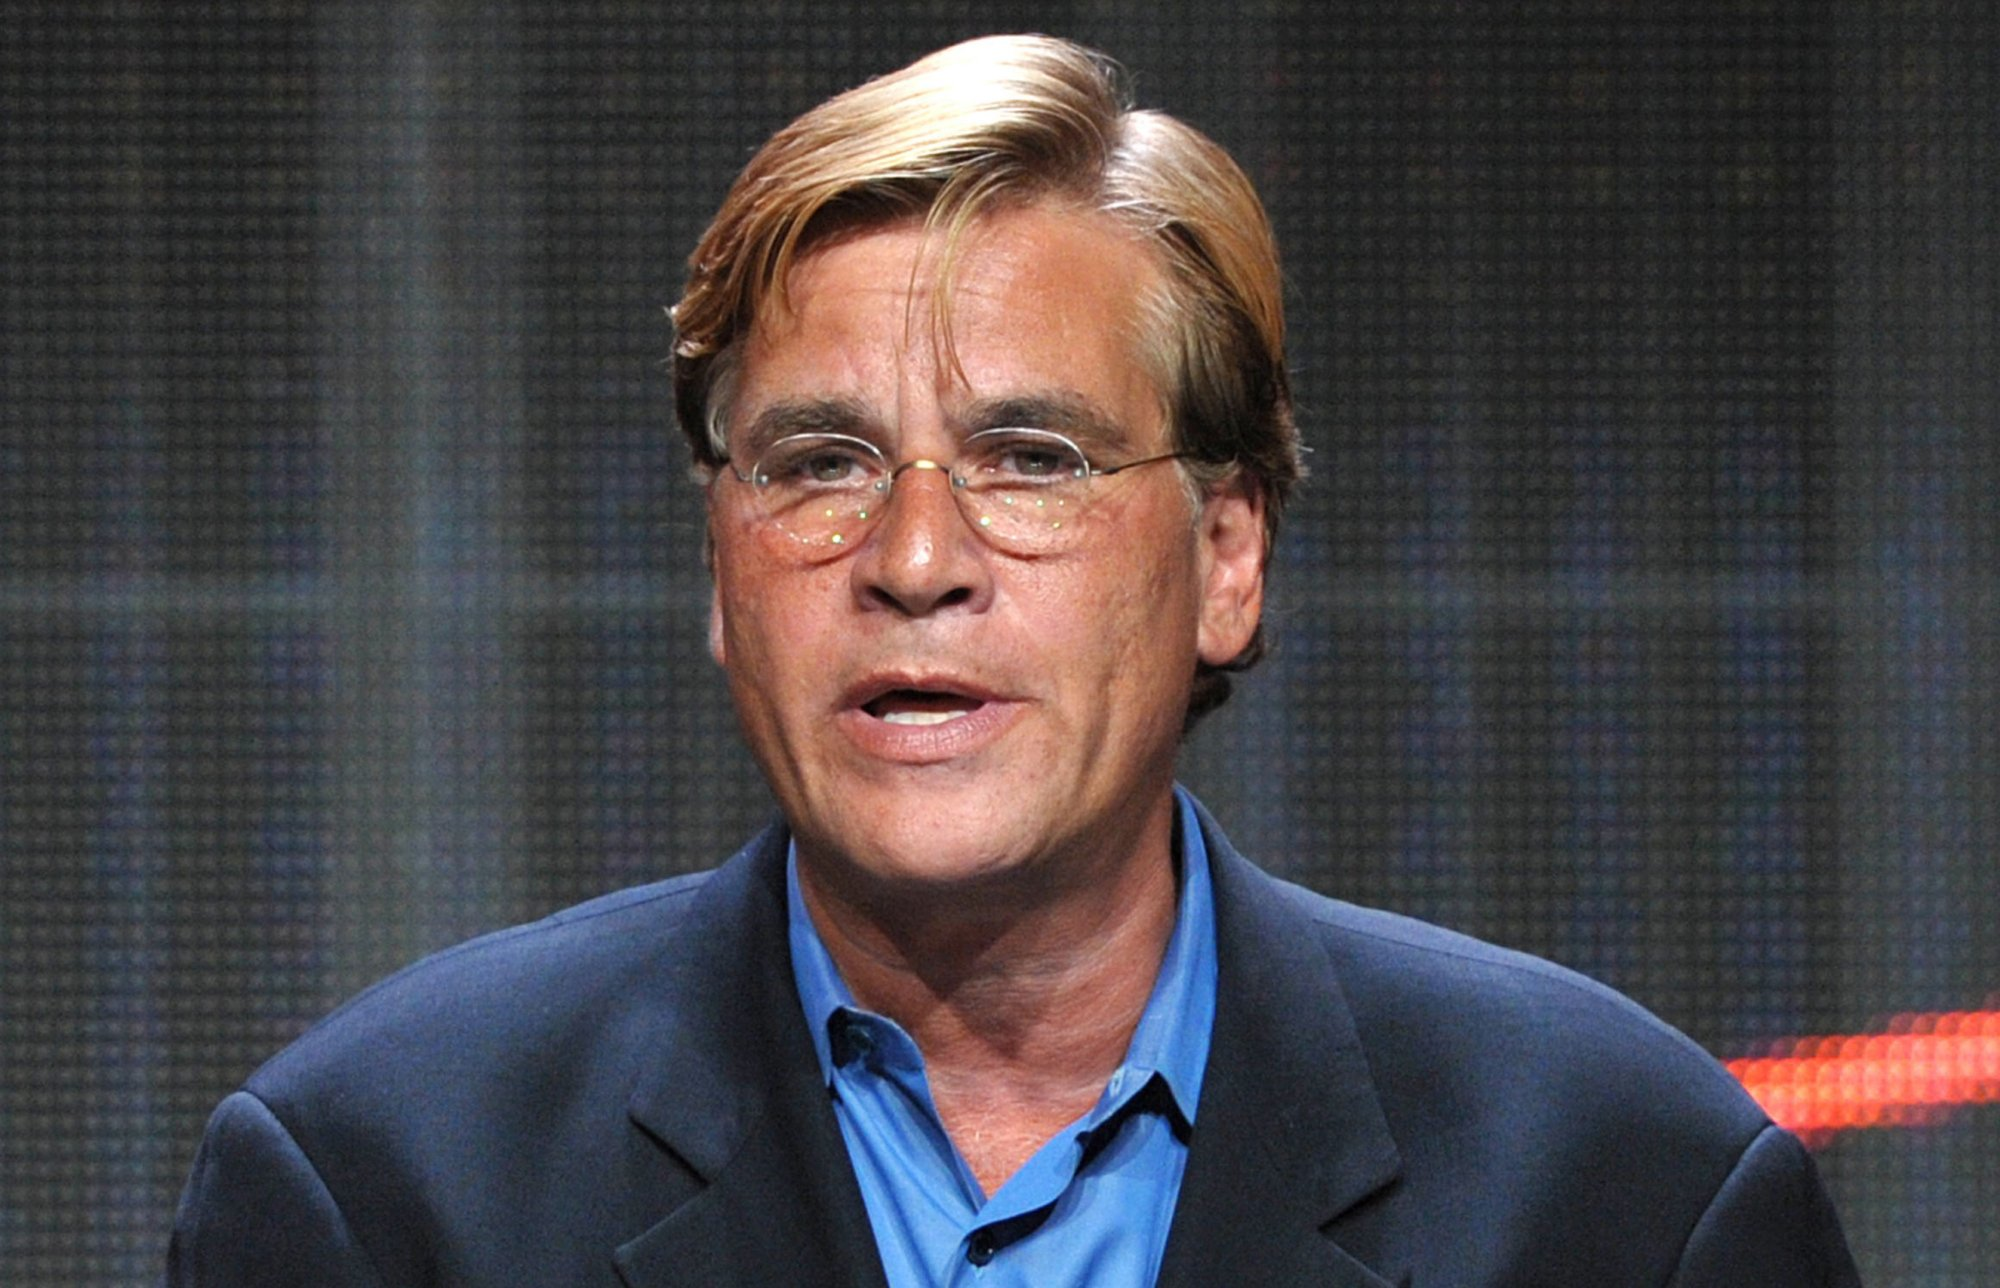 Aaron Sorkin Genuinely Shocked to Discover that Hollywood Is Not a Meritocracy for POC